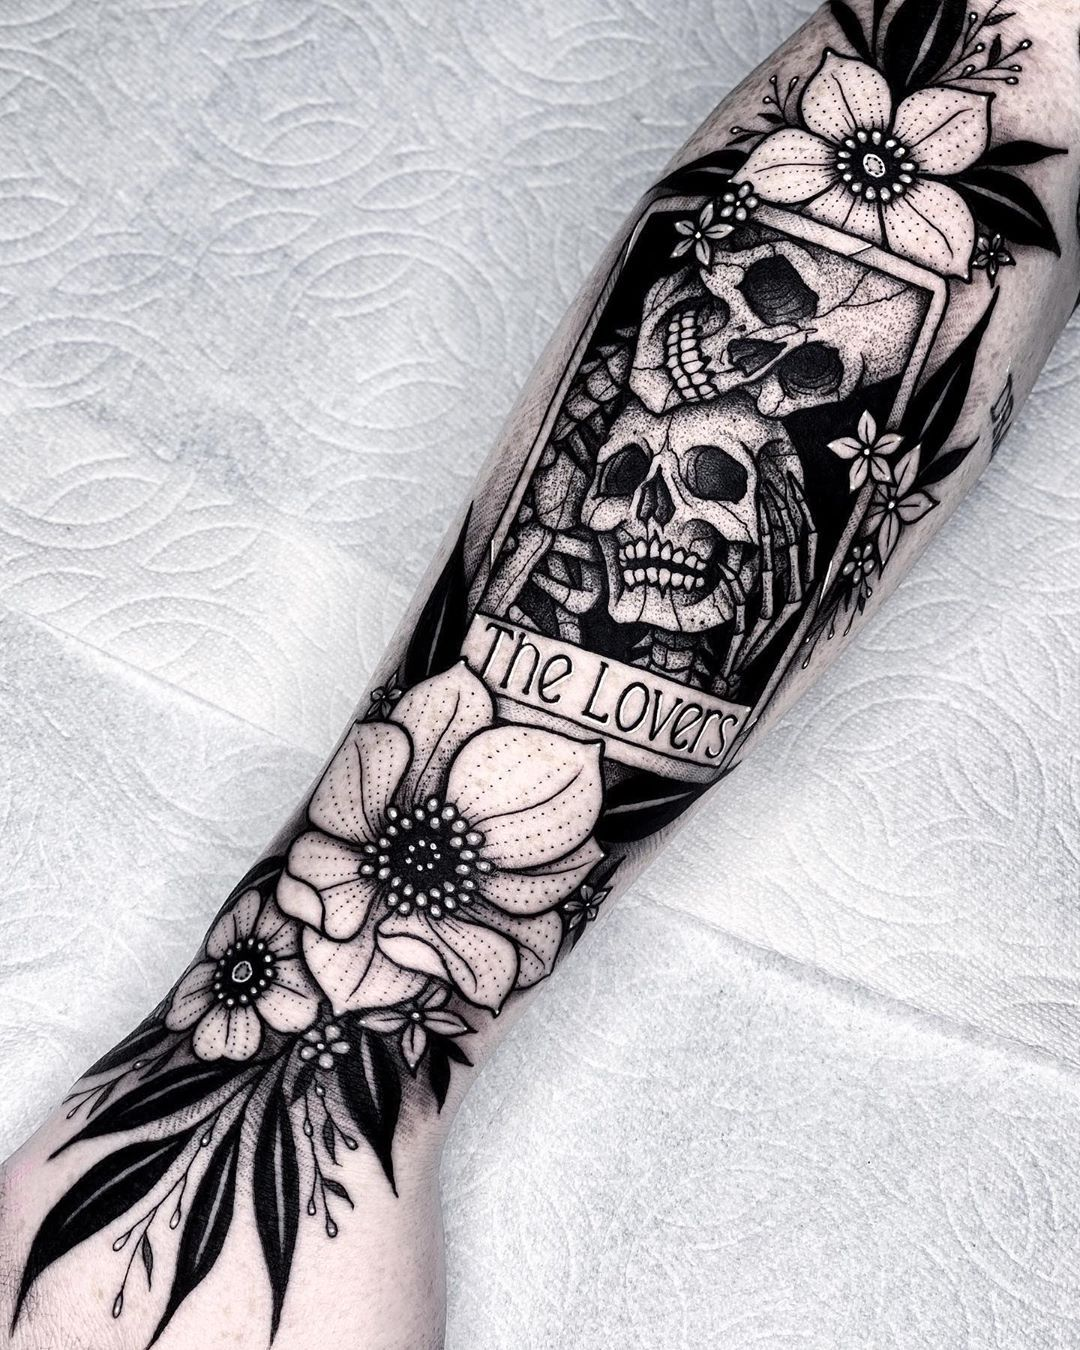 10 Best Skull Tattoo Designs and Meaning - HowLife